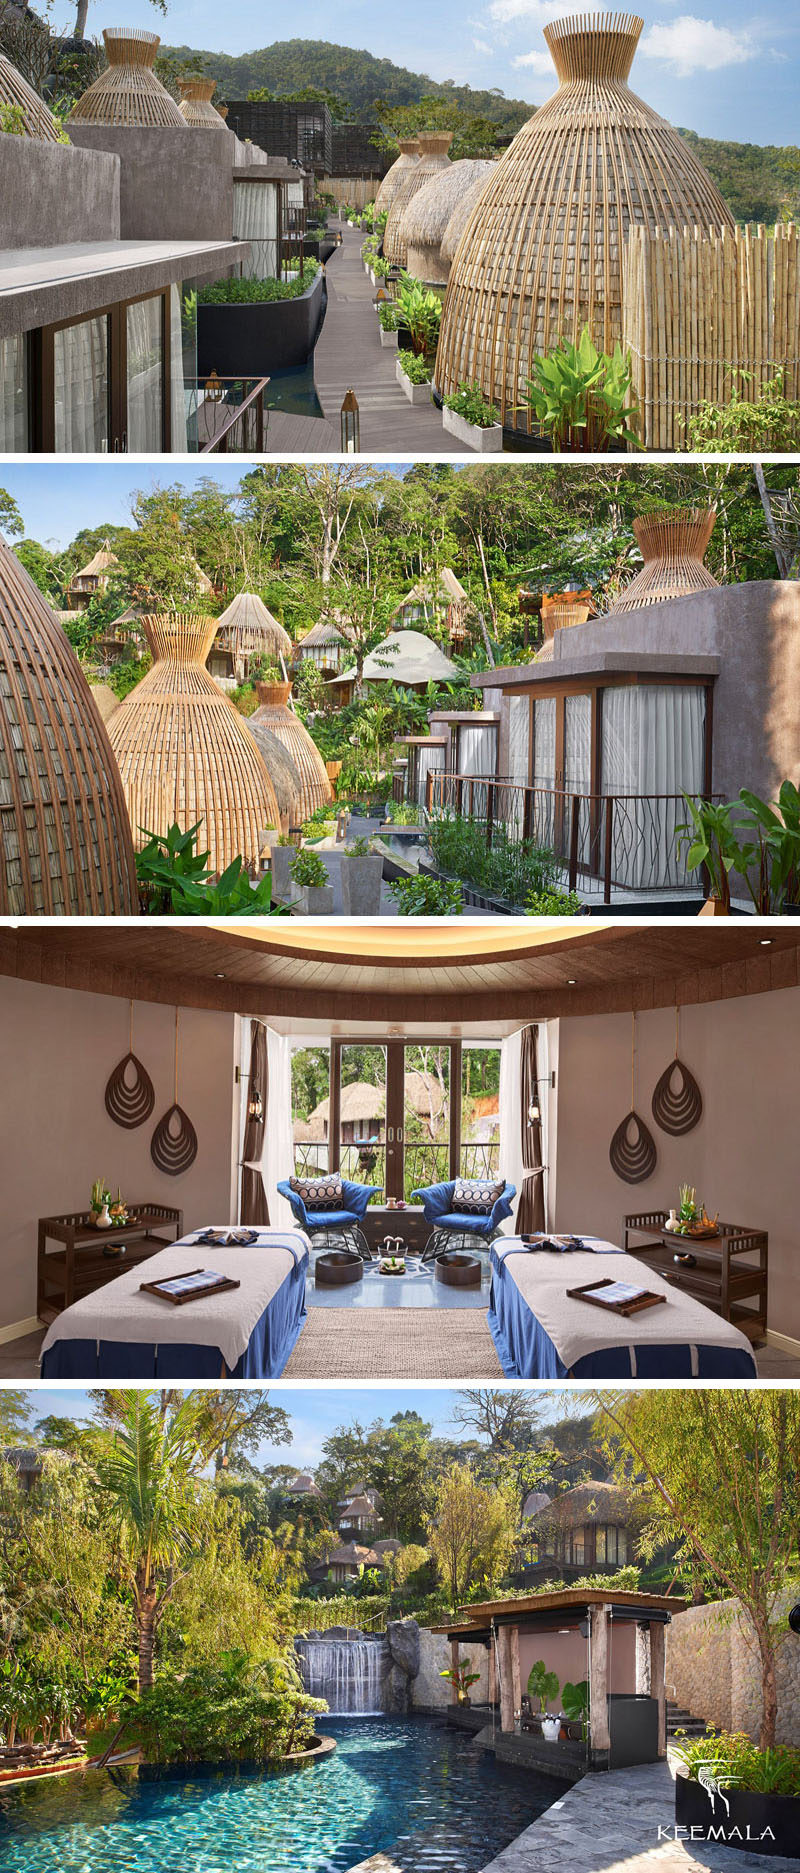 Travel Idea - The Keemala resort in Phuket, Thailand, has luxurious amenities including a spa and a large pool complete with swim up bar